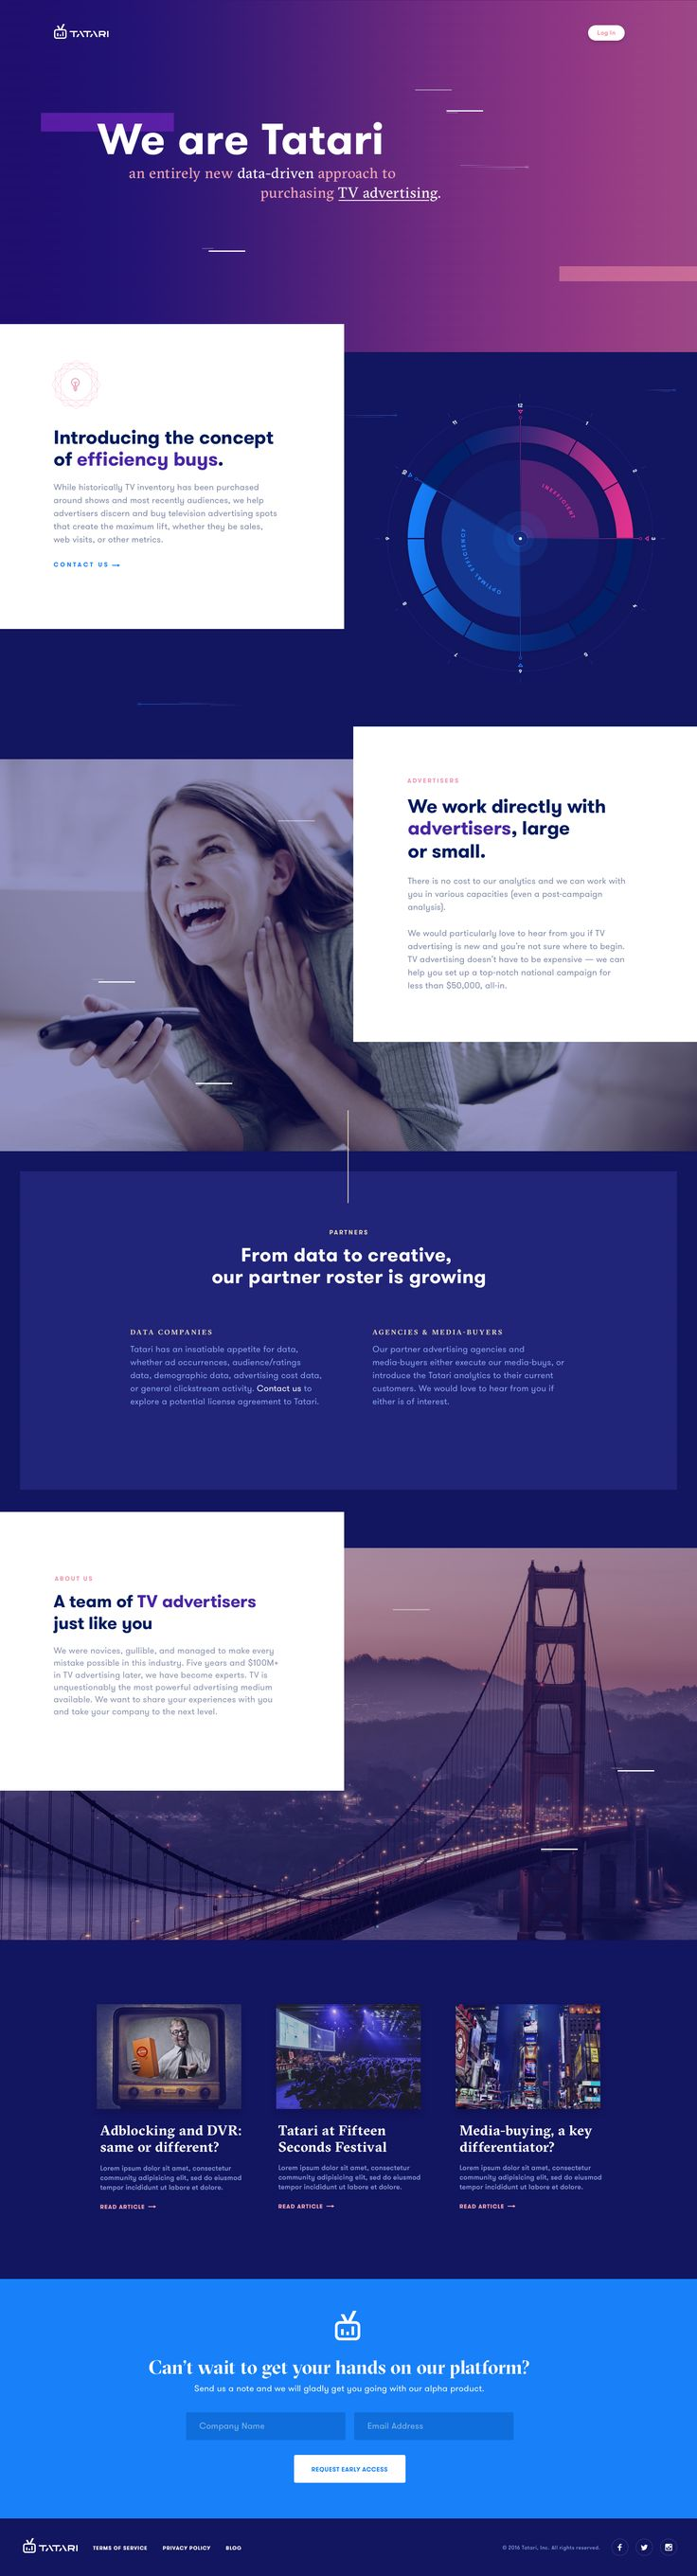 TV Advertising Platform • Ui design concept for a landing page by Mason Yarnell